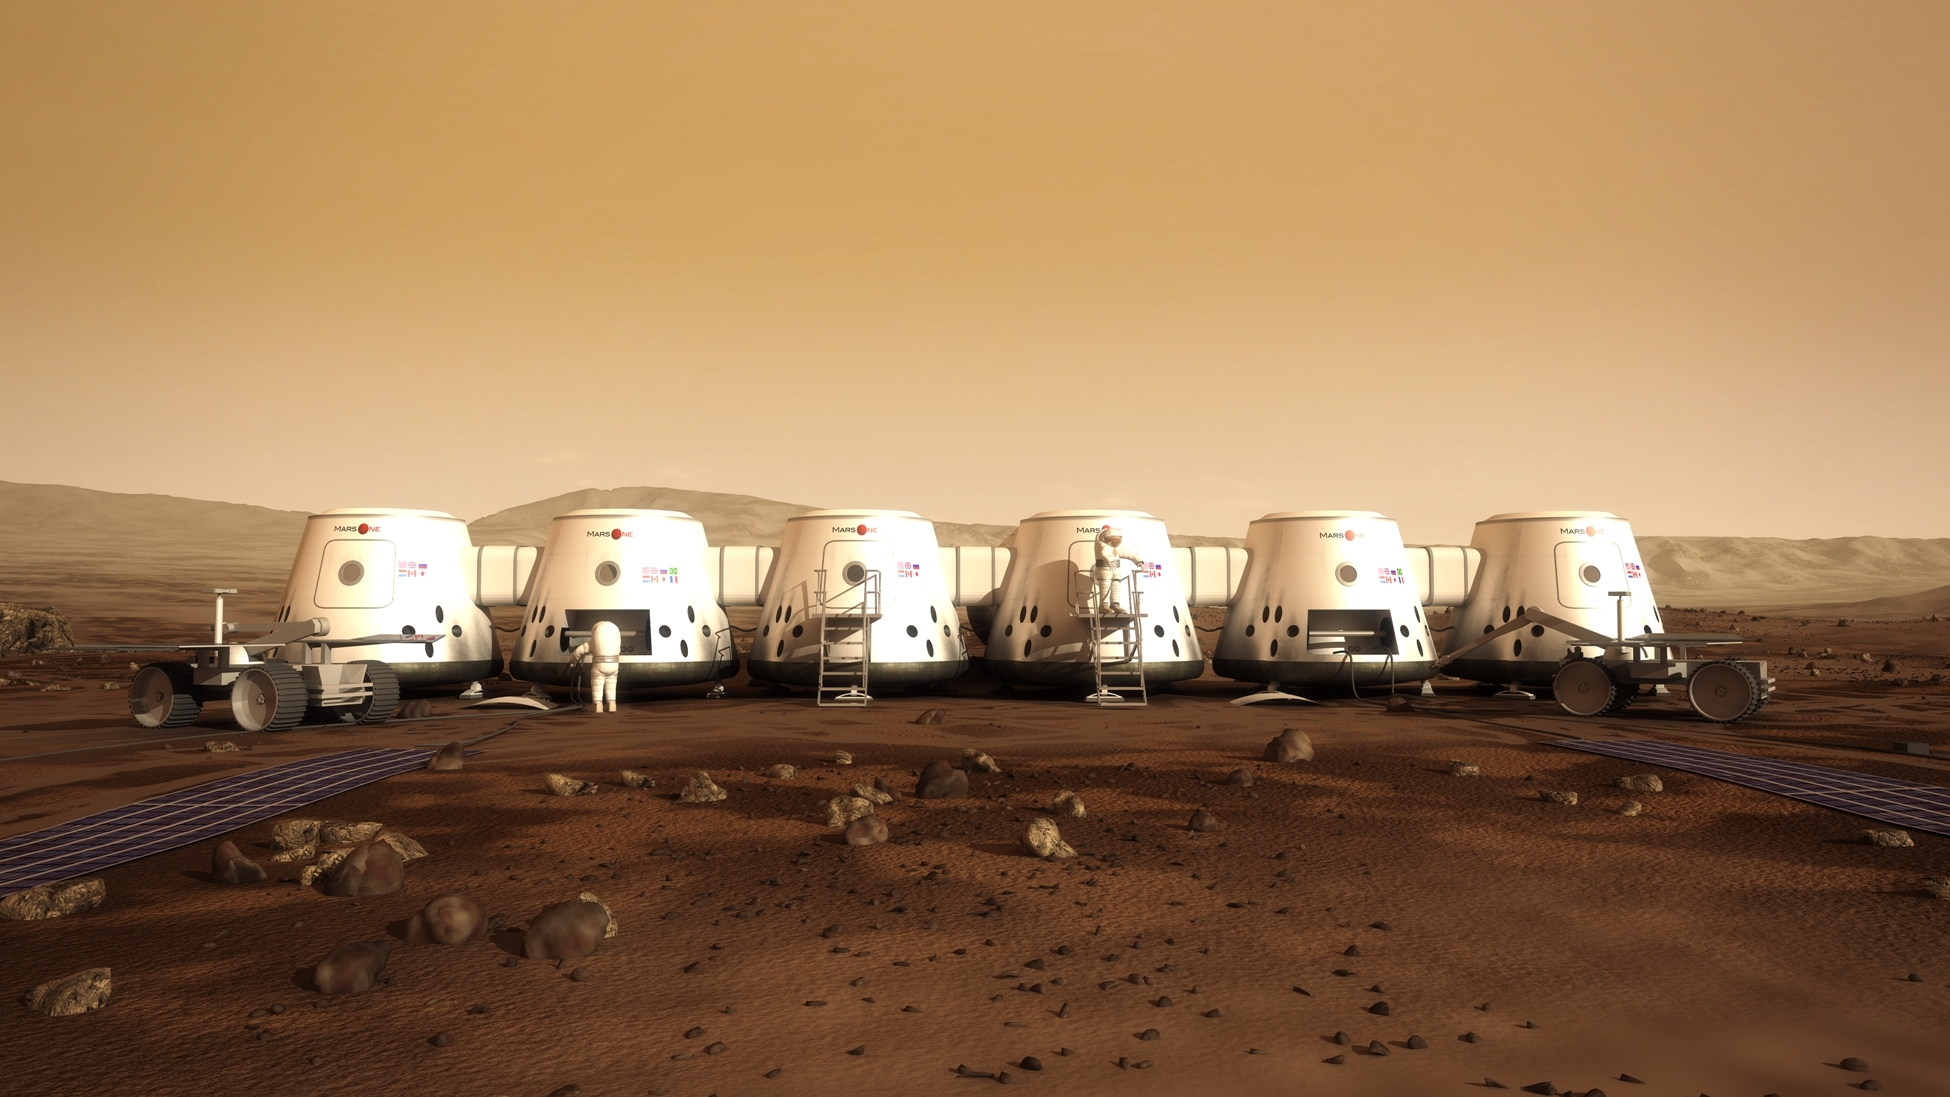 Manned Mars Missions Could Threaten Red Planet Life